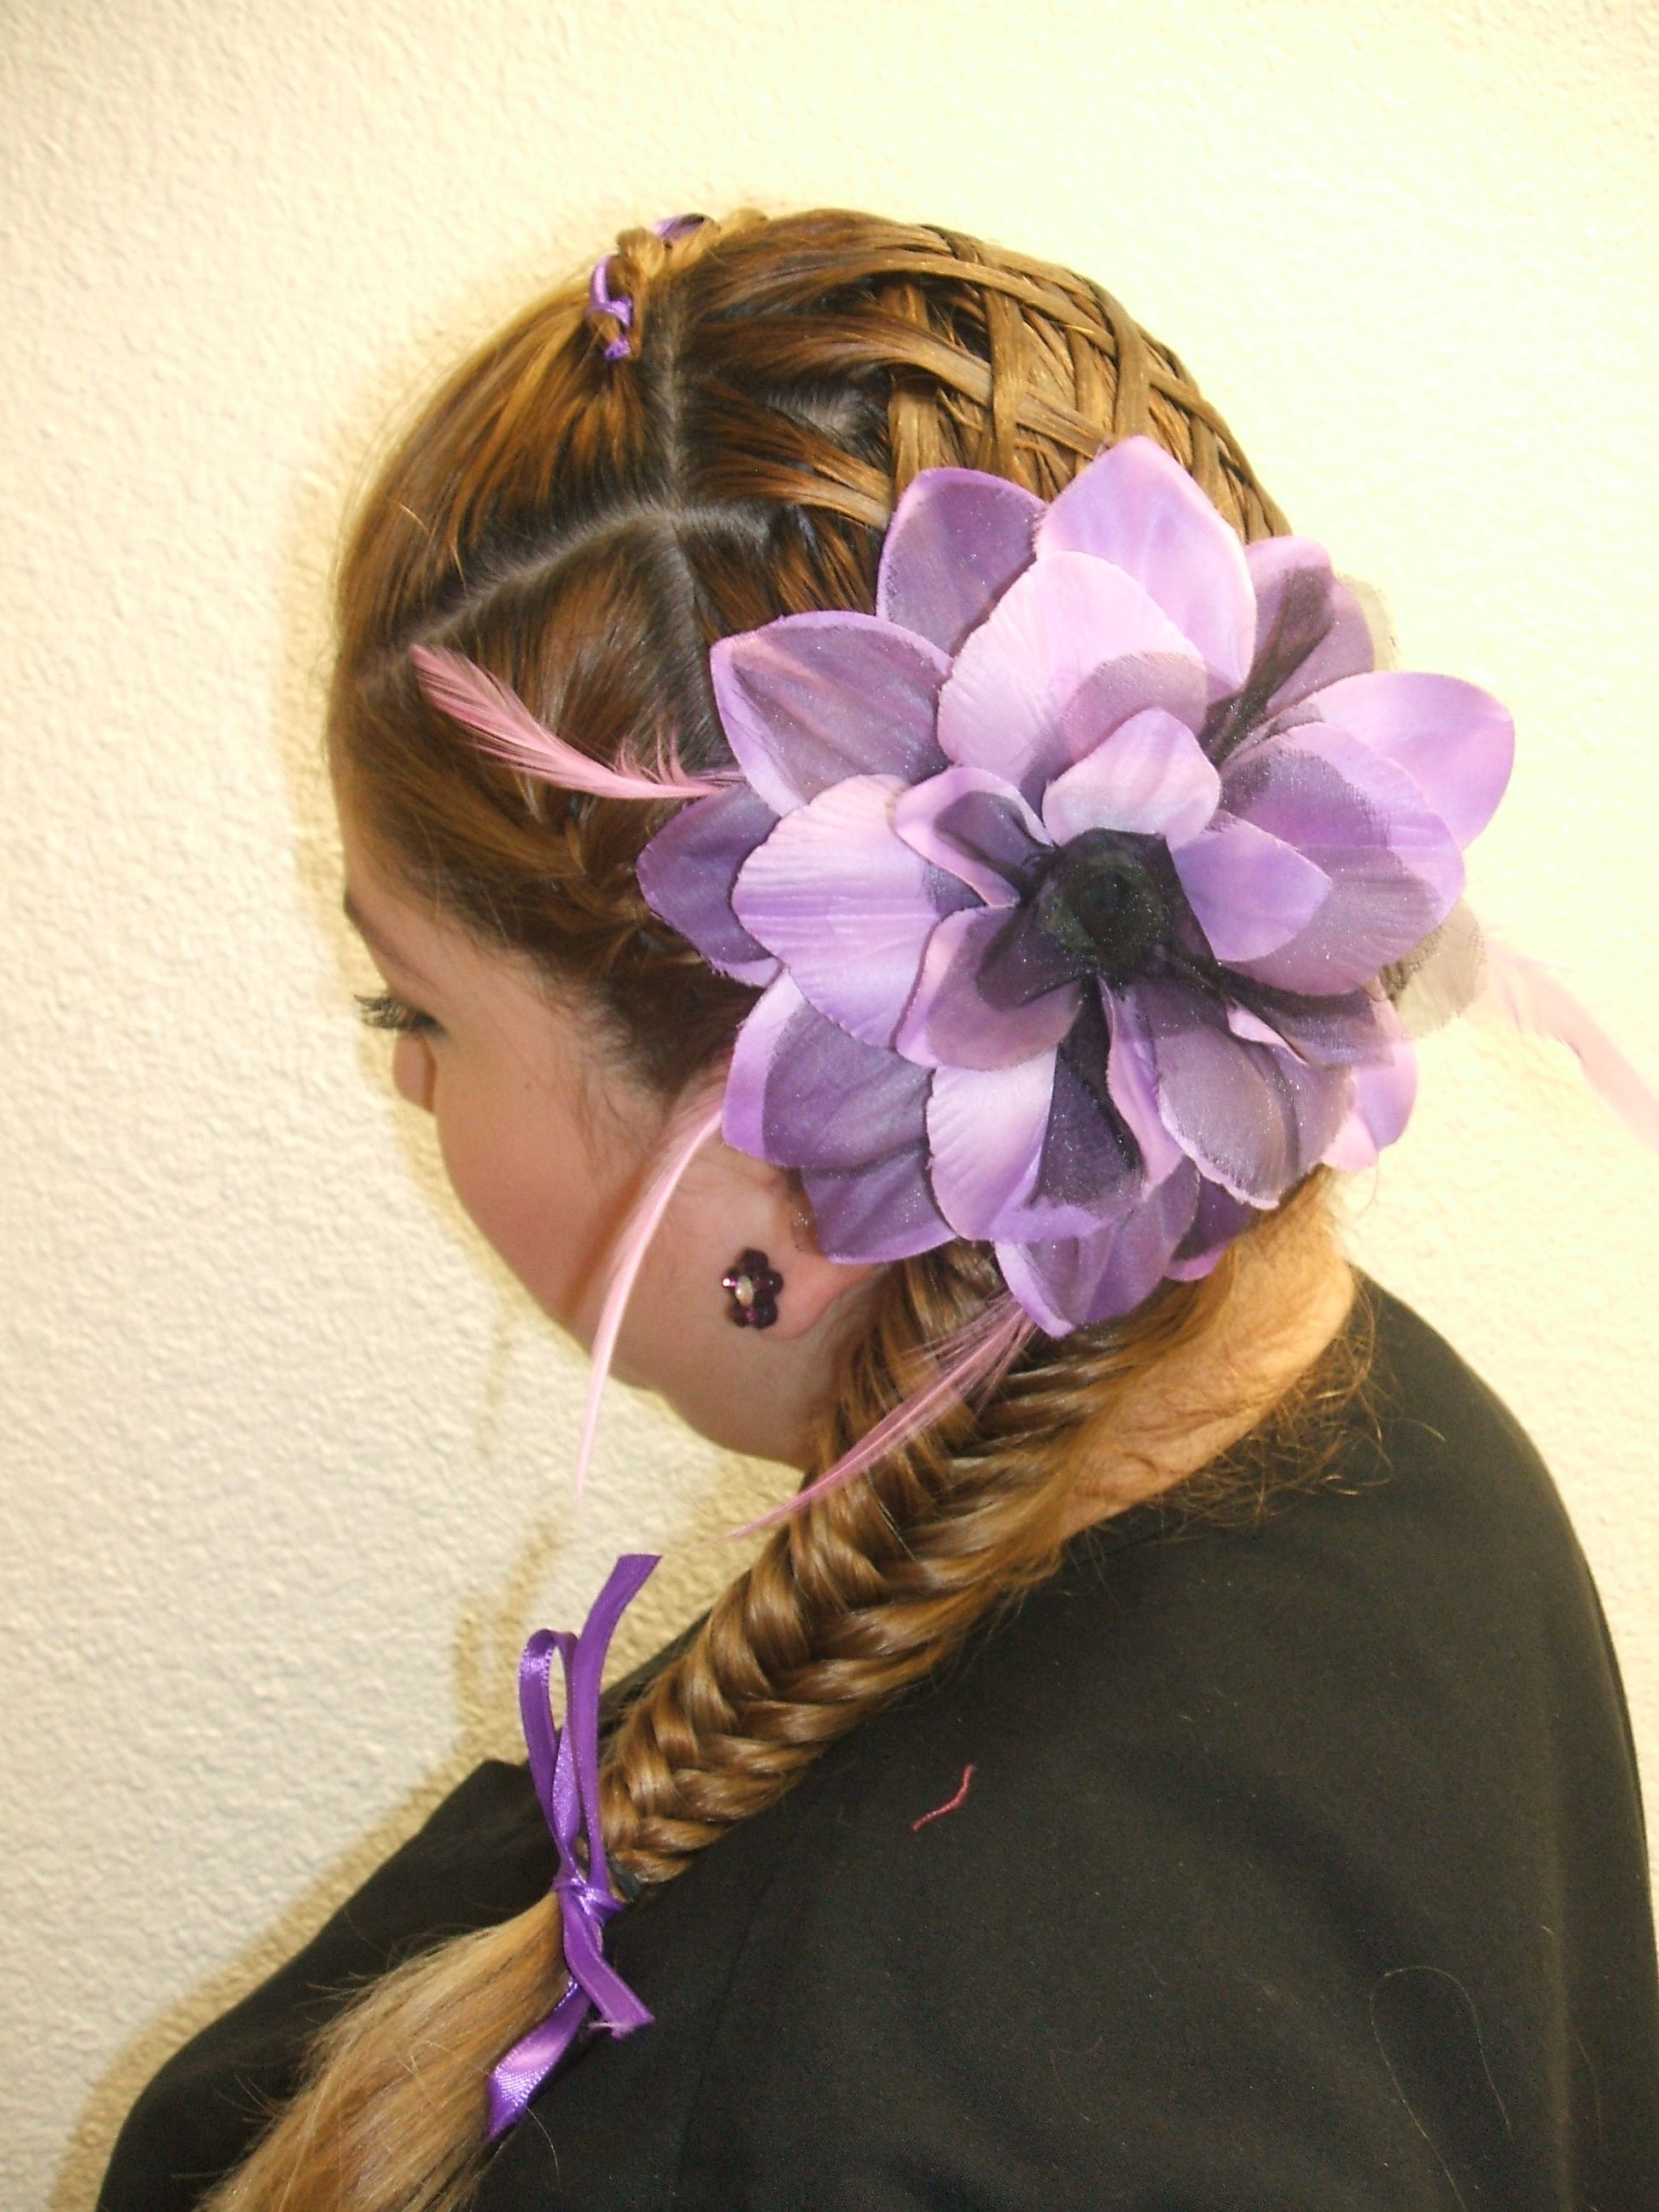 BRAIDS by students at our North Austin campus.  For more pictures check out www.Facebook.com/BellaBeautyCollege